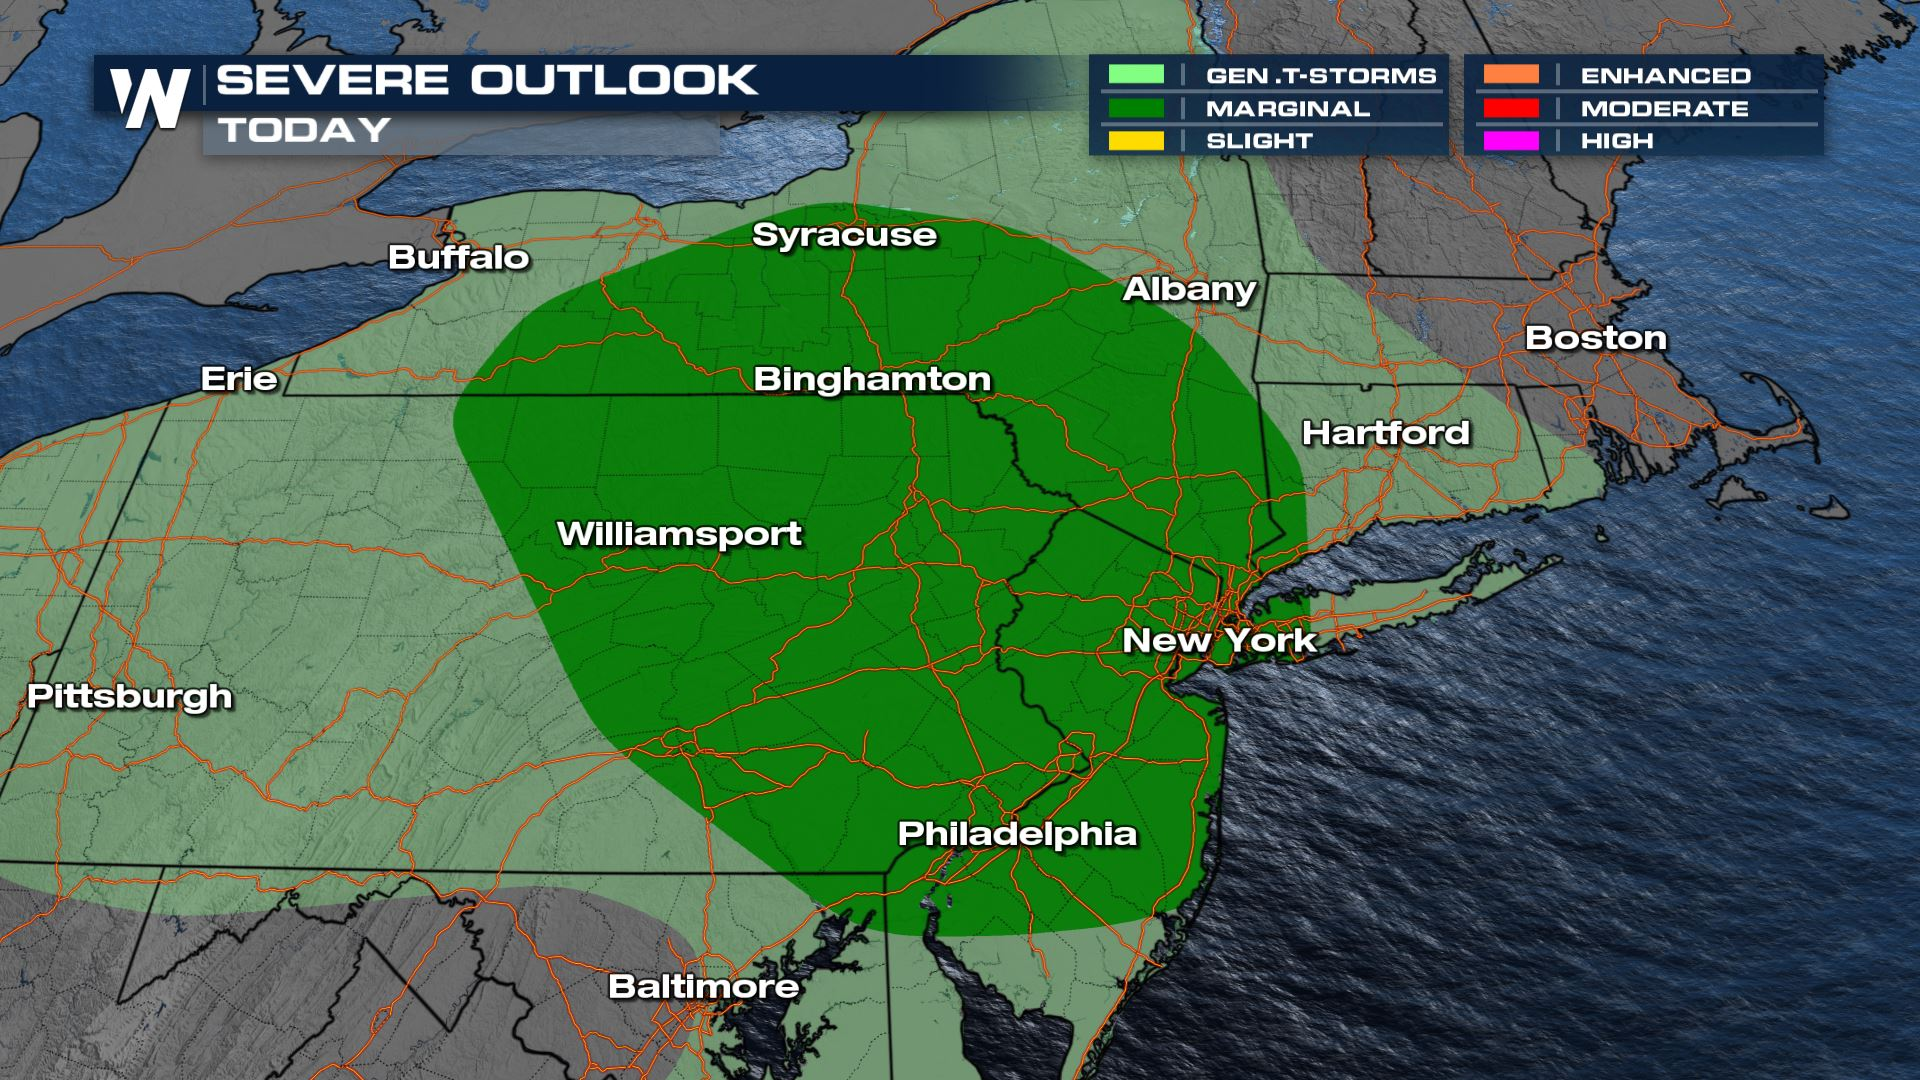 Lingering Storms Impact the Northeast Again Today